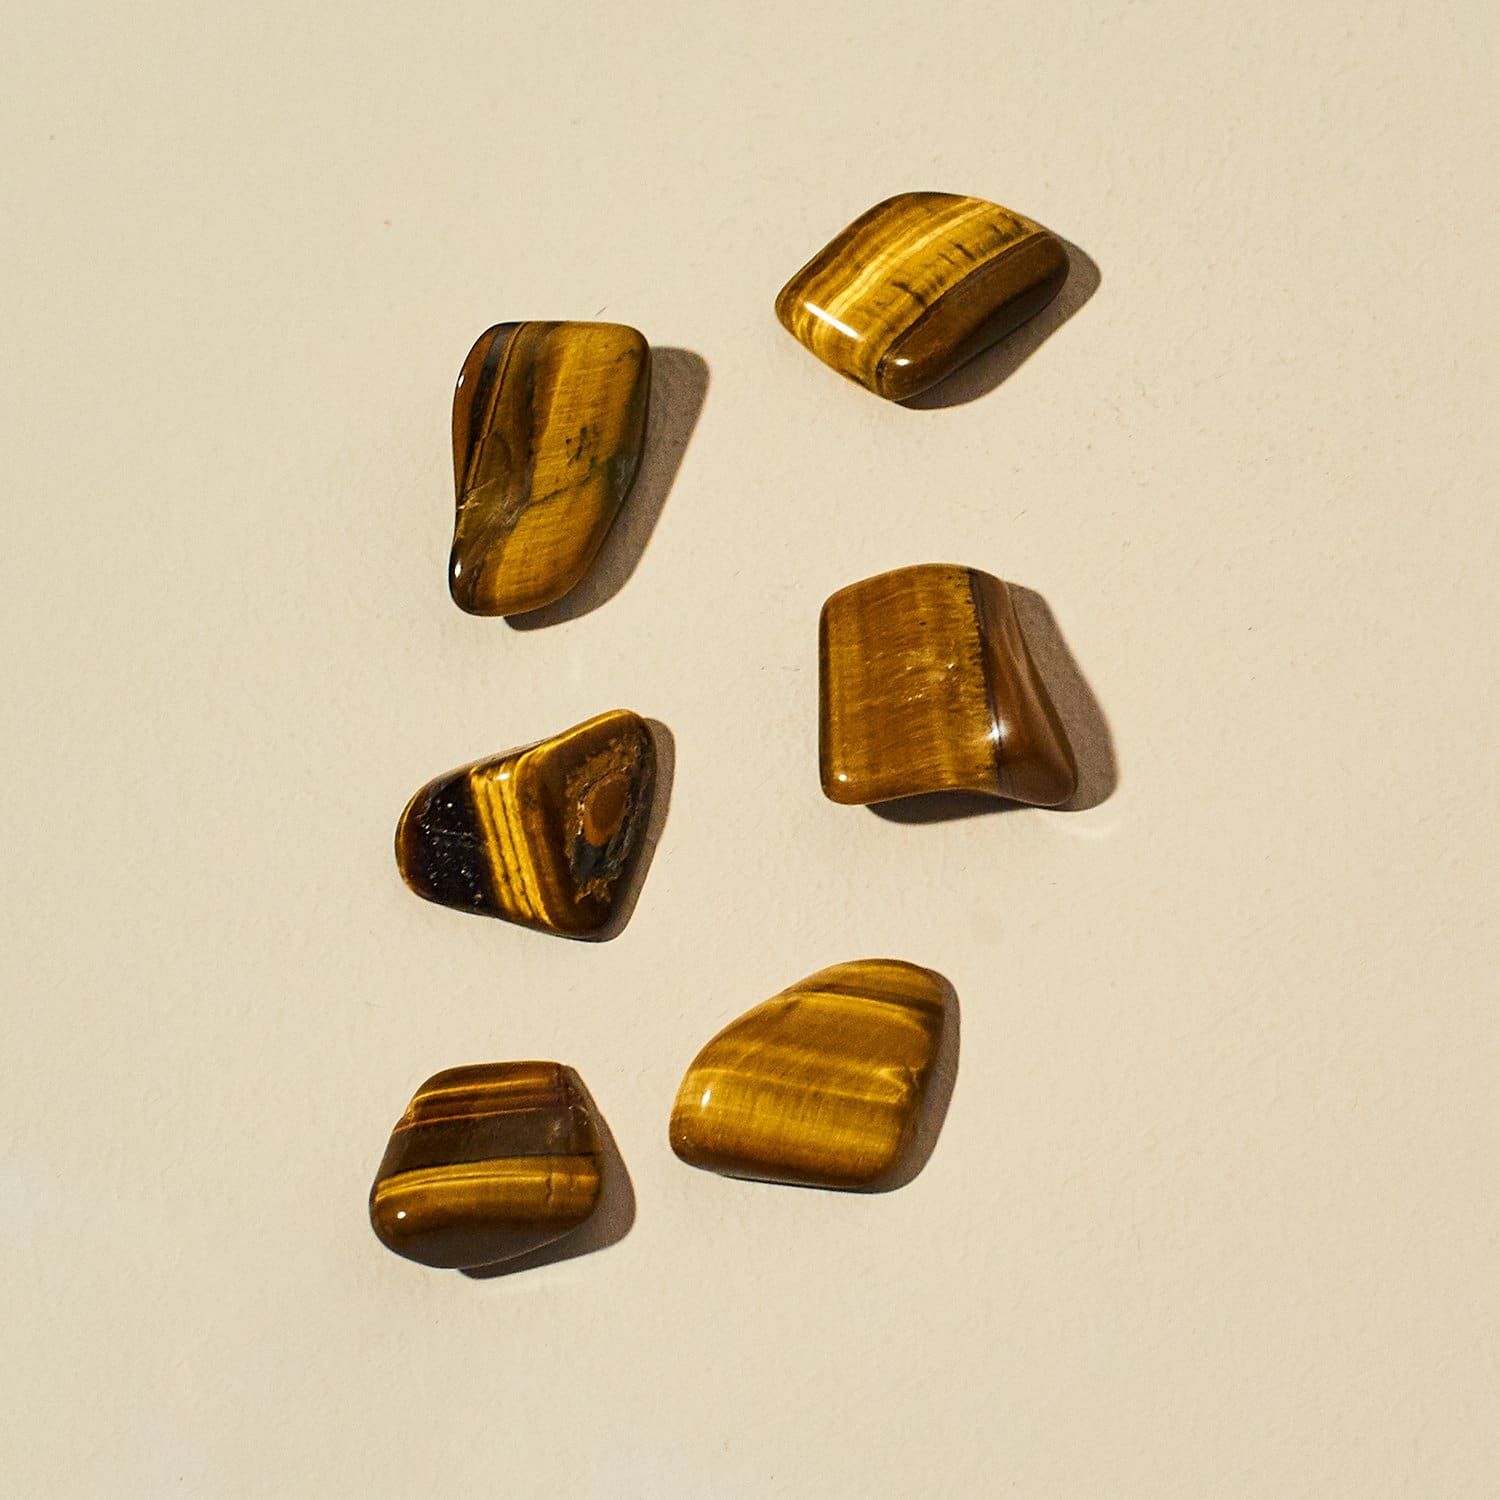 Tiger's Eye - Small Crystal Crystal - Shoppe - Energy -